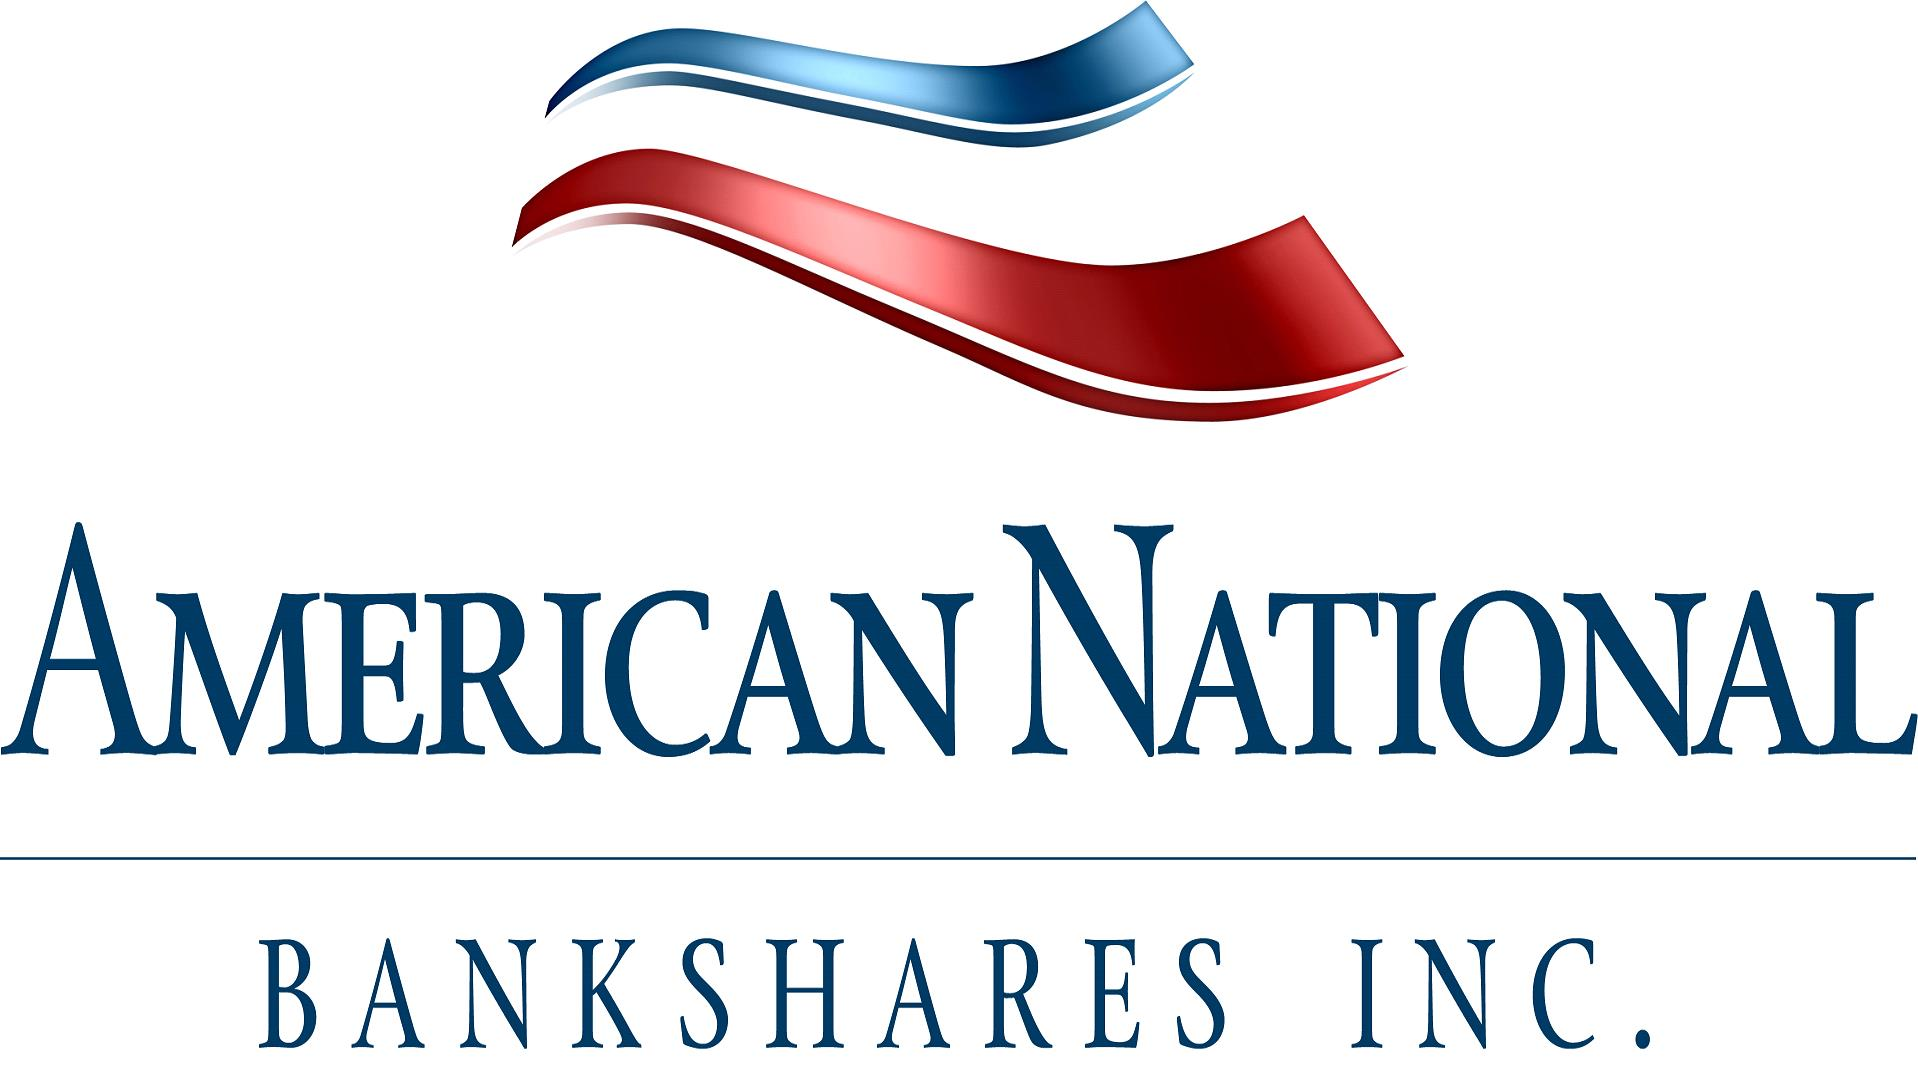 American National Bankshares Inc